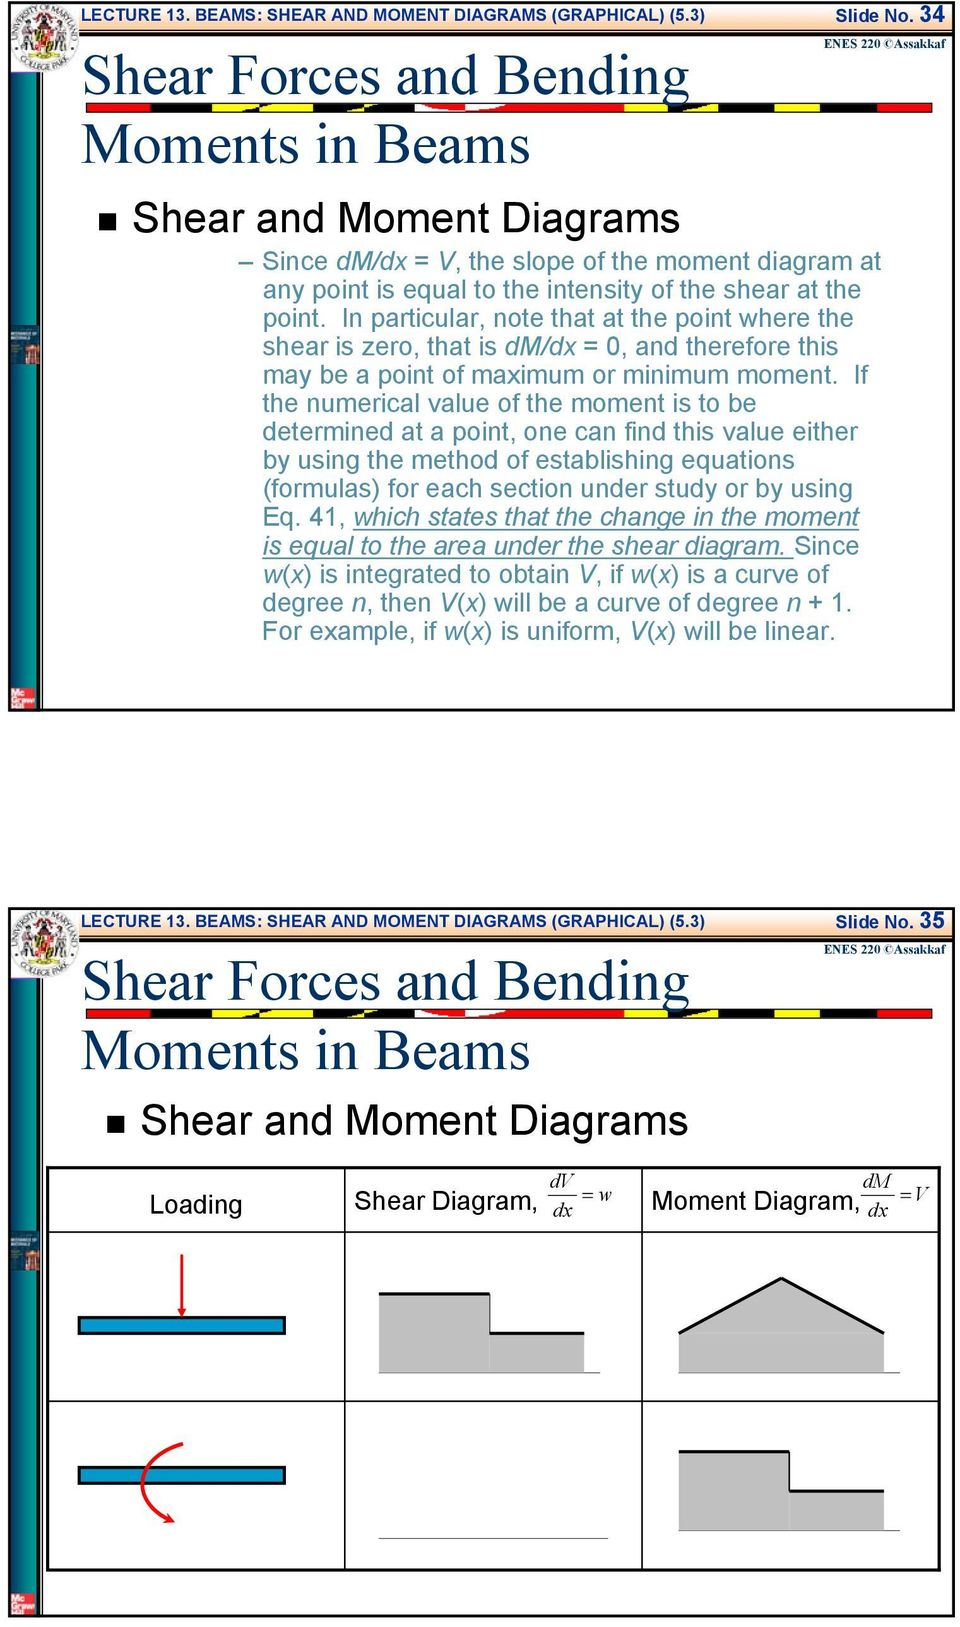 Beams Shear And Moment Diagrams Graphical Pdf Beam Diagram Formulas If The Numerical Value Of Is To Be Determined At A Point One